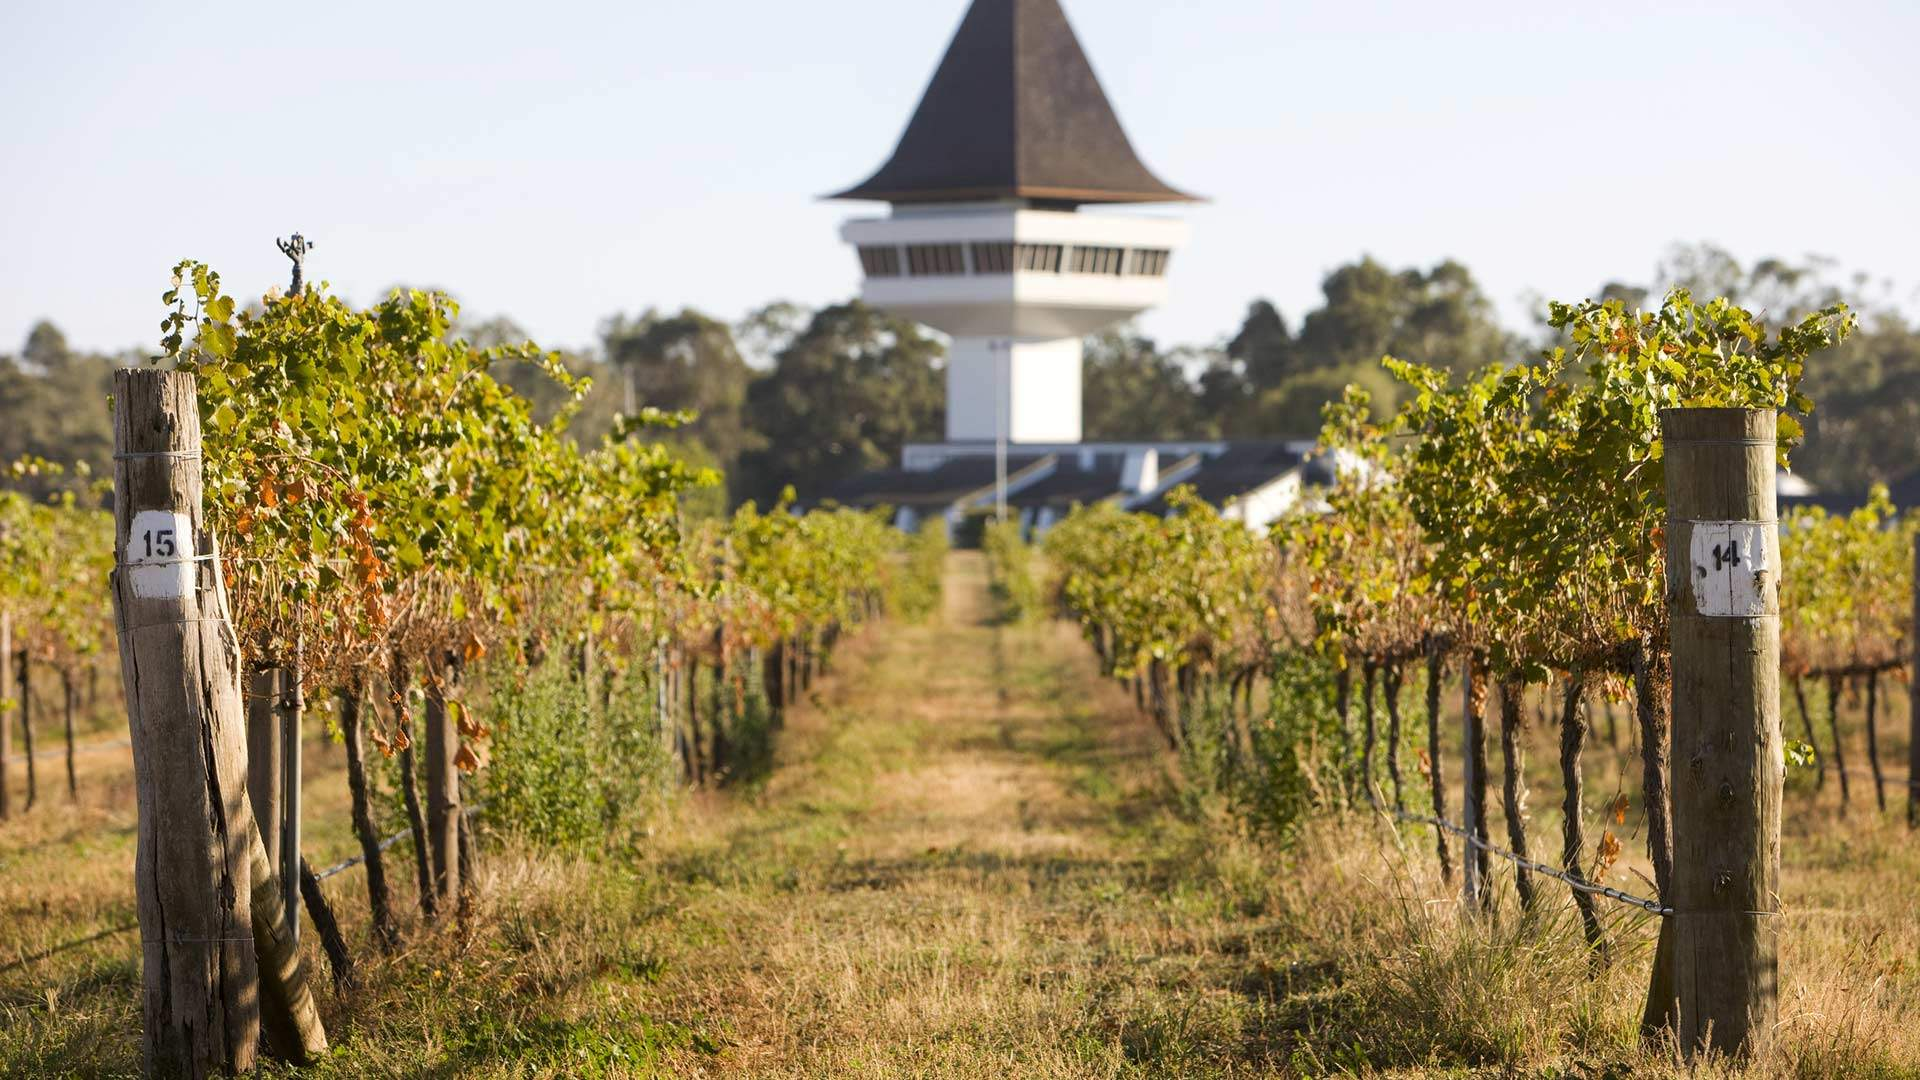 An Art Lover's Weekend Guide to Nagambie and Its Surrounds